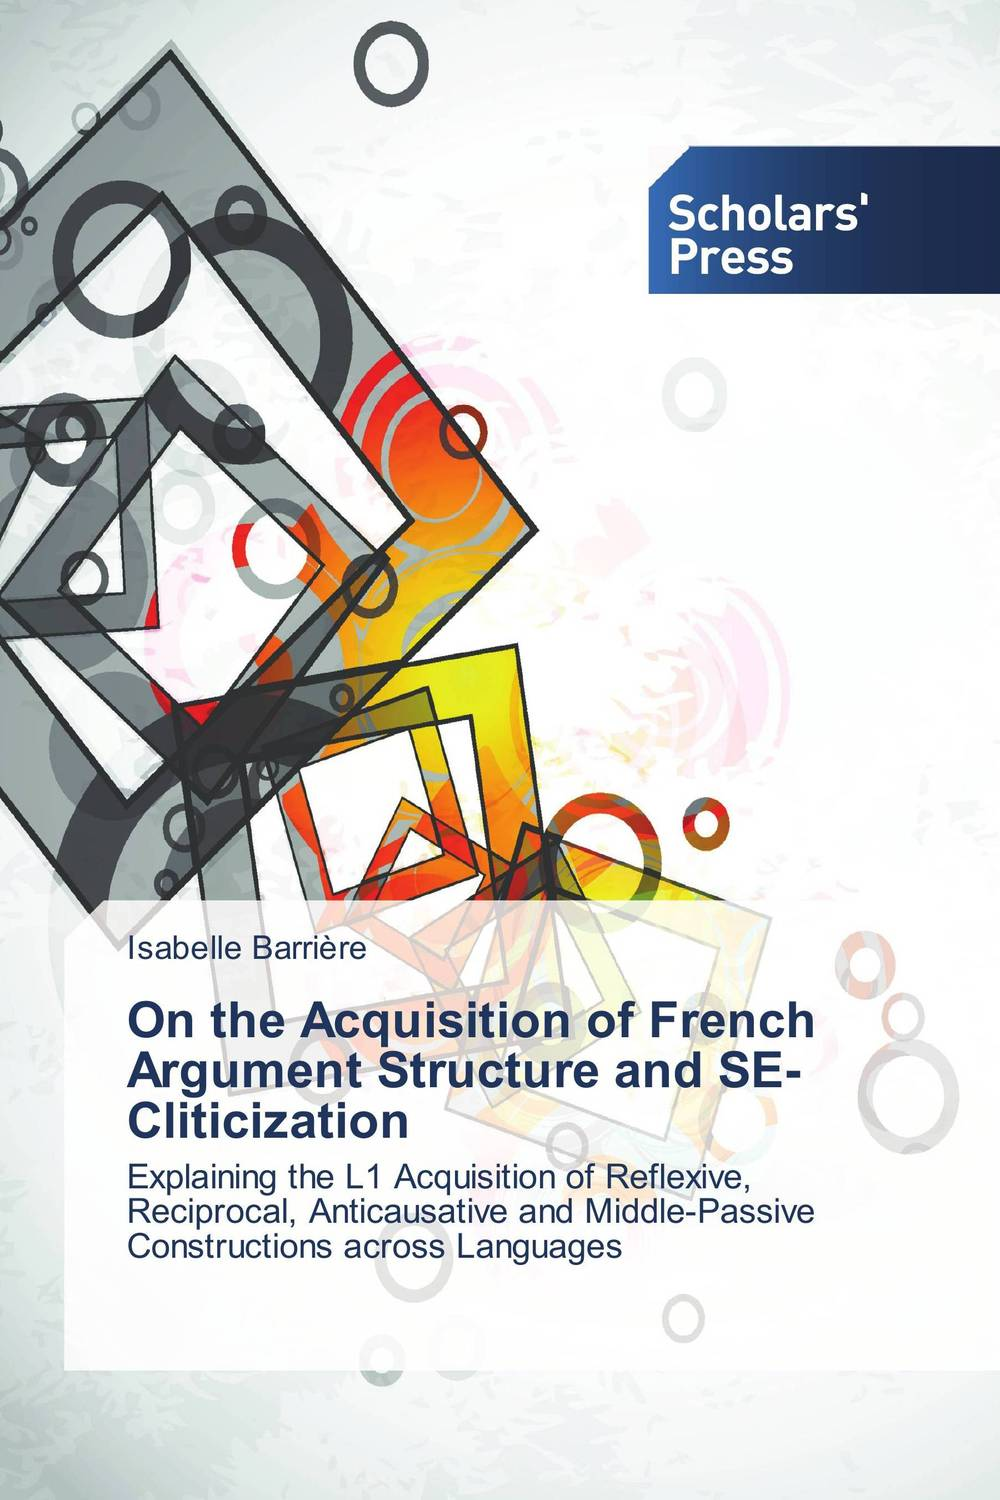 On the Acquisition of French Argument Structure and SE-Cliticization